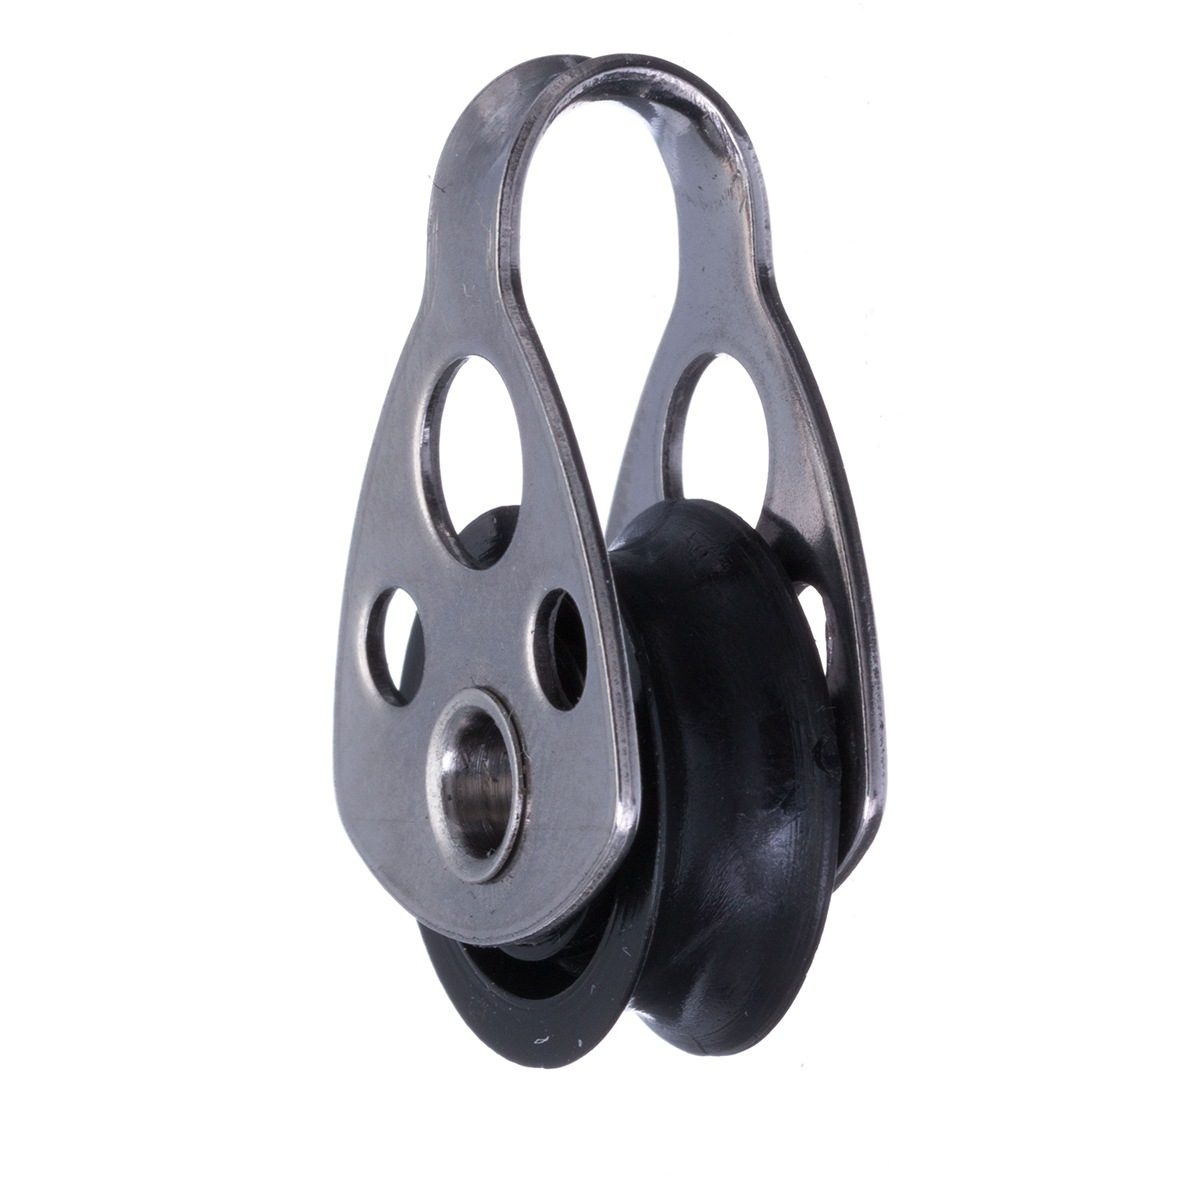 R1530 - 18mm Block Micro Single loop acetal sheave(Pk Size: 1)